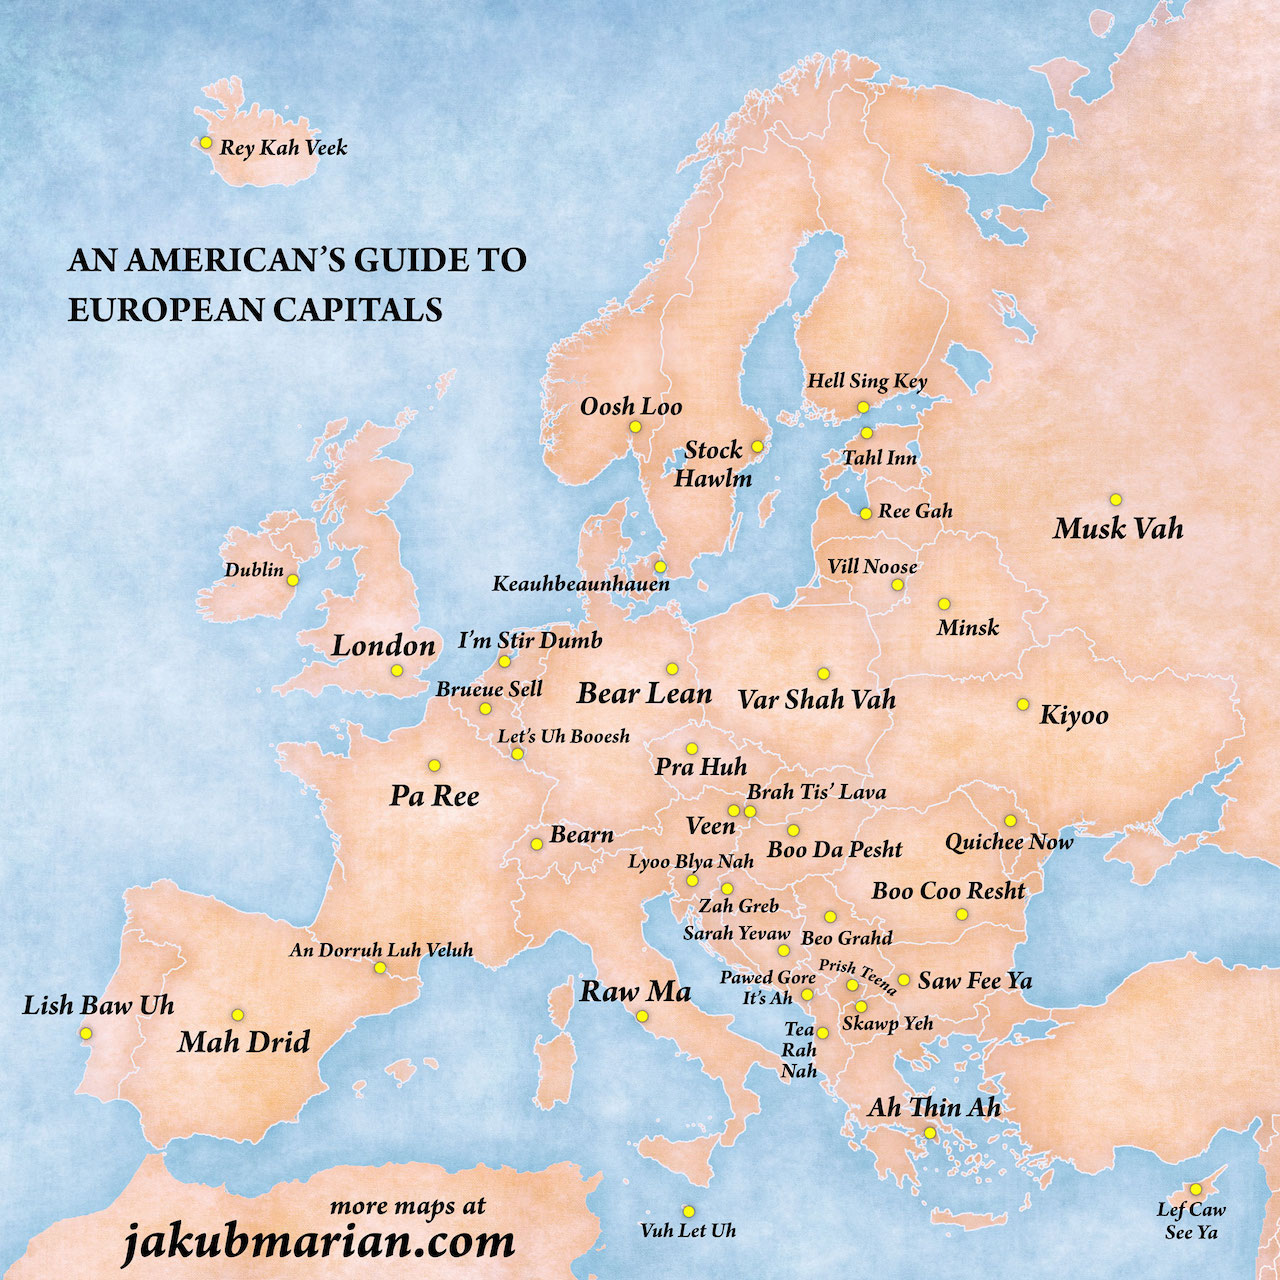 A Clever Map That Phonetically Spells Out the Names of European